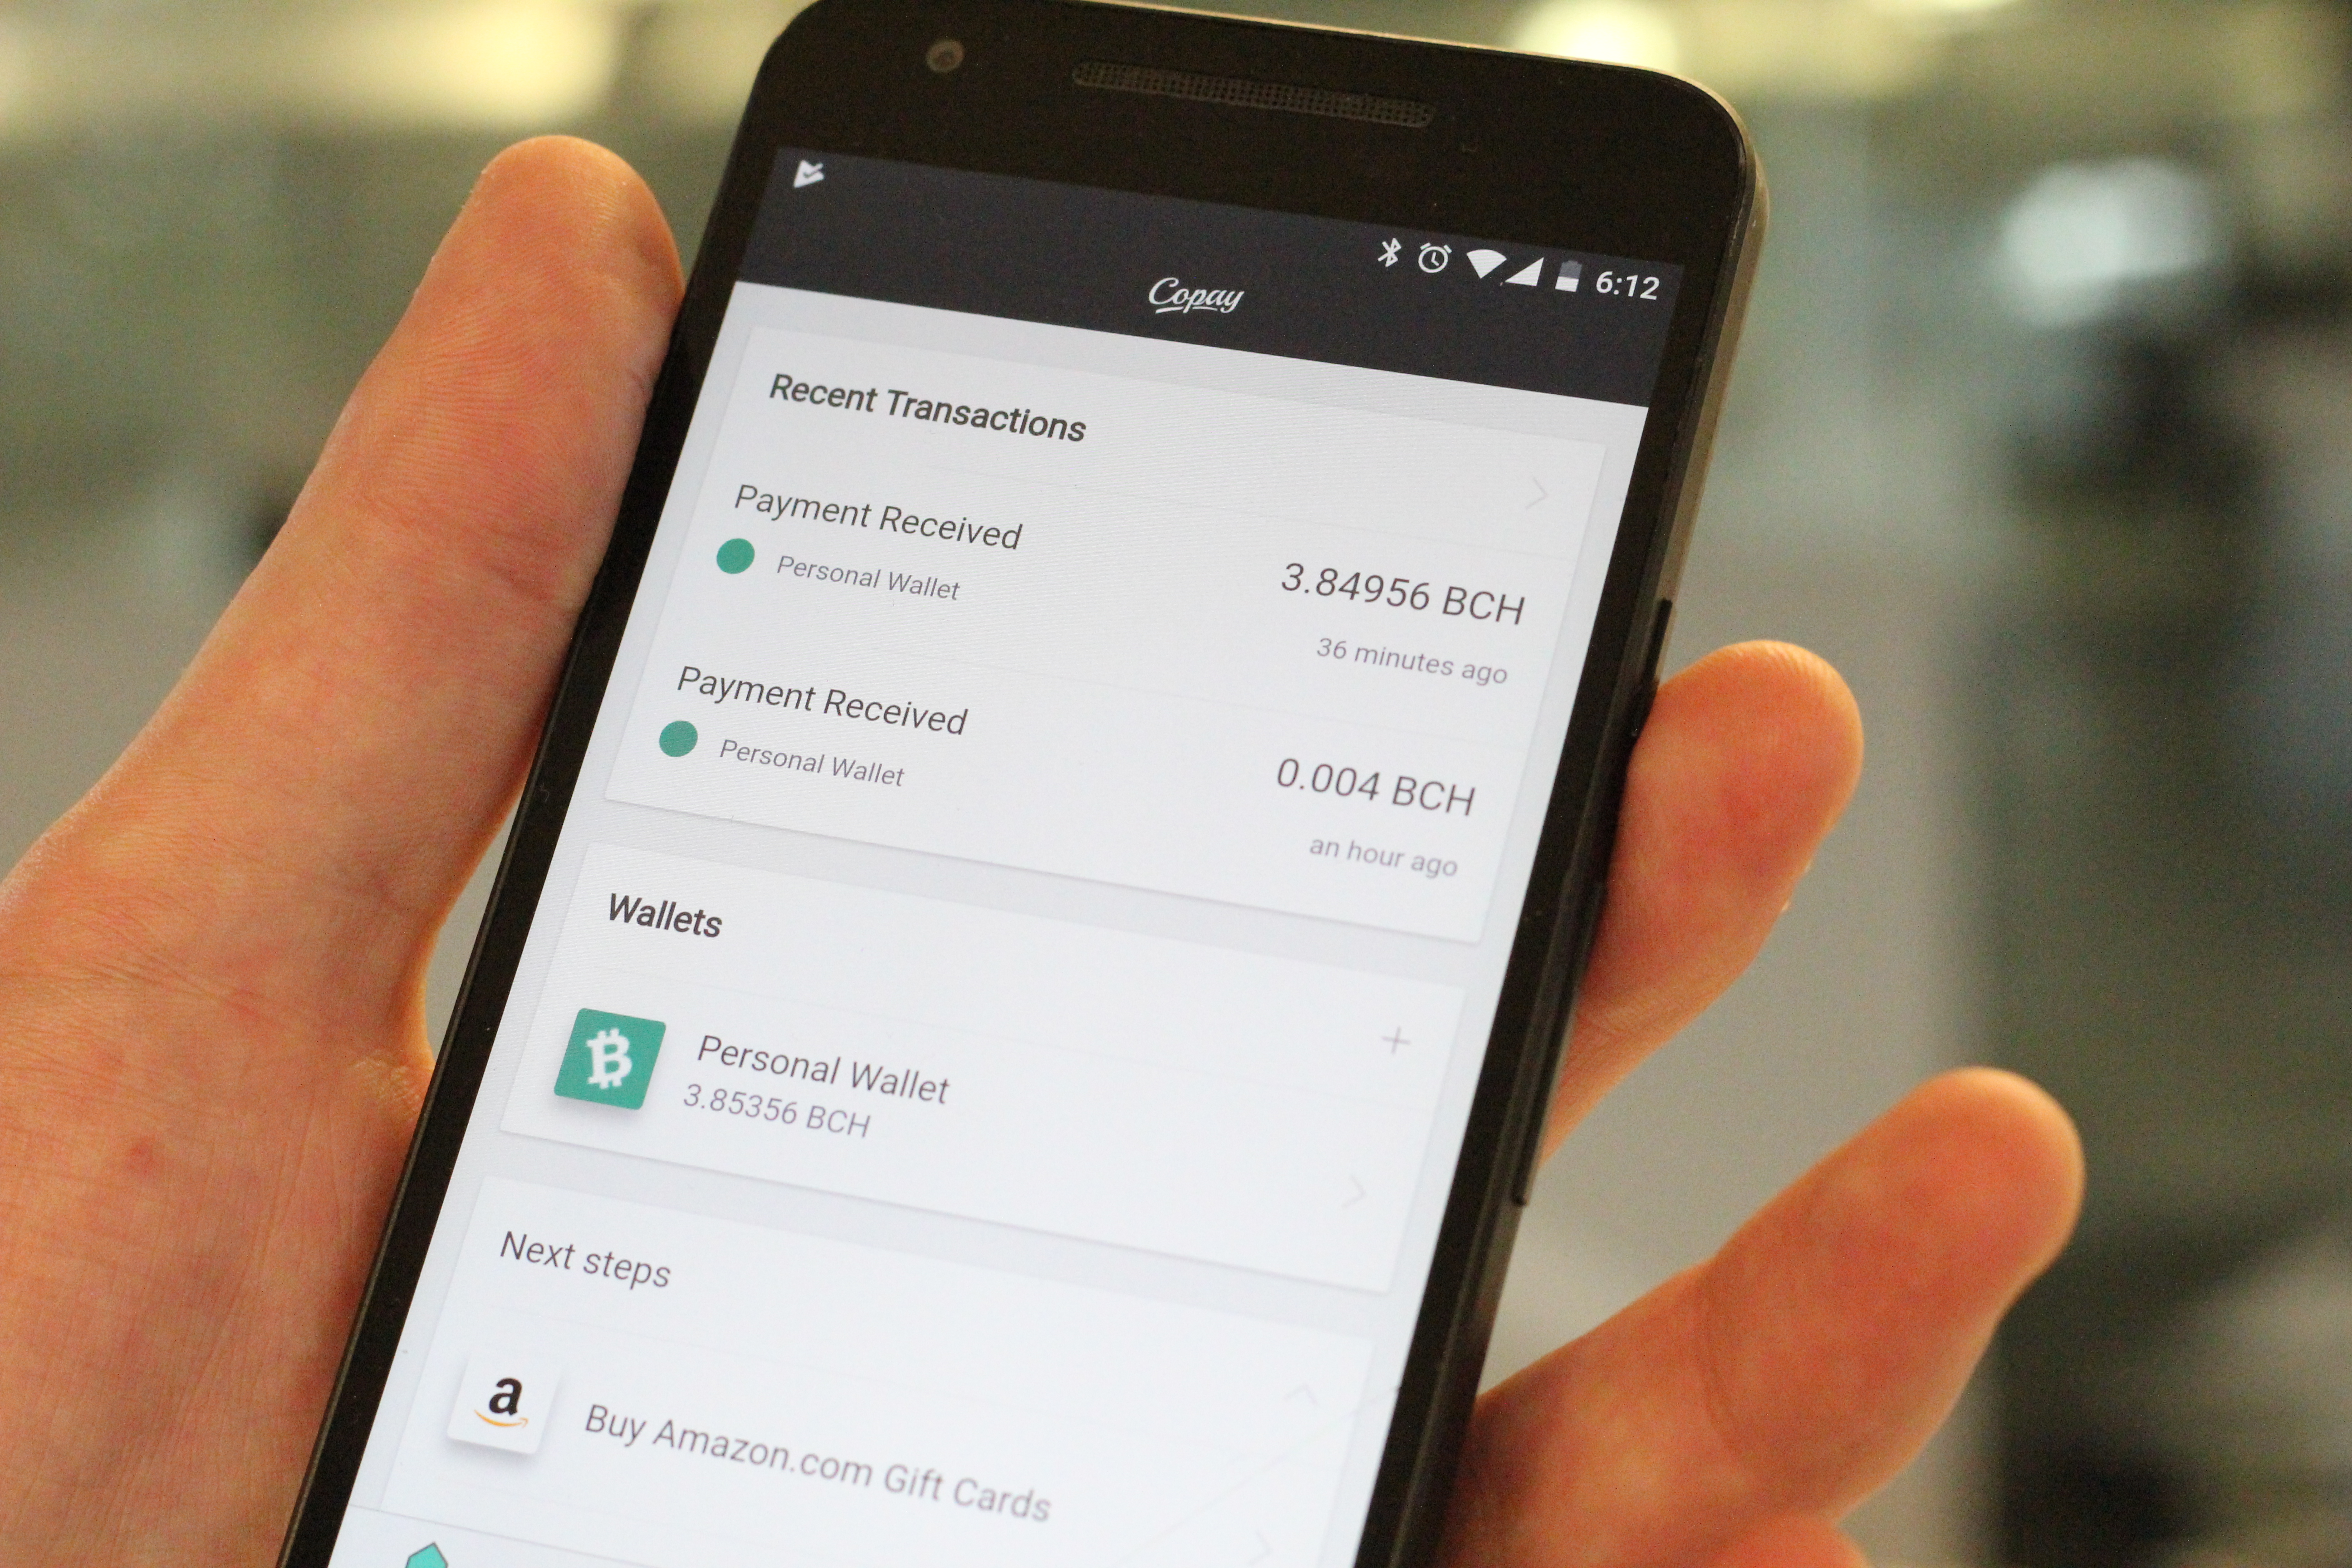 Bitcoin Cash Support Comes Out of Beta for the BitPay and Copay Wallets